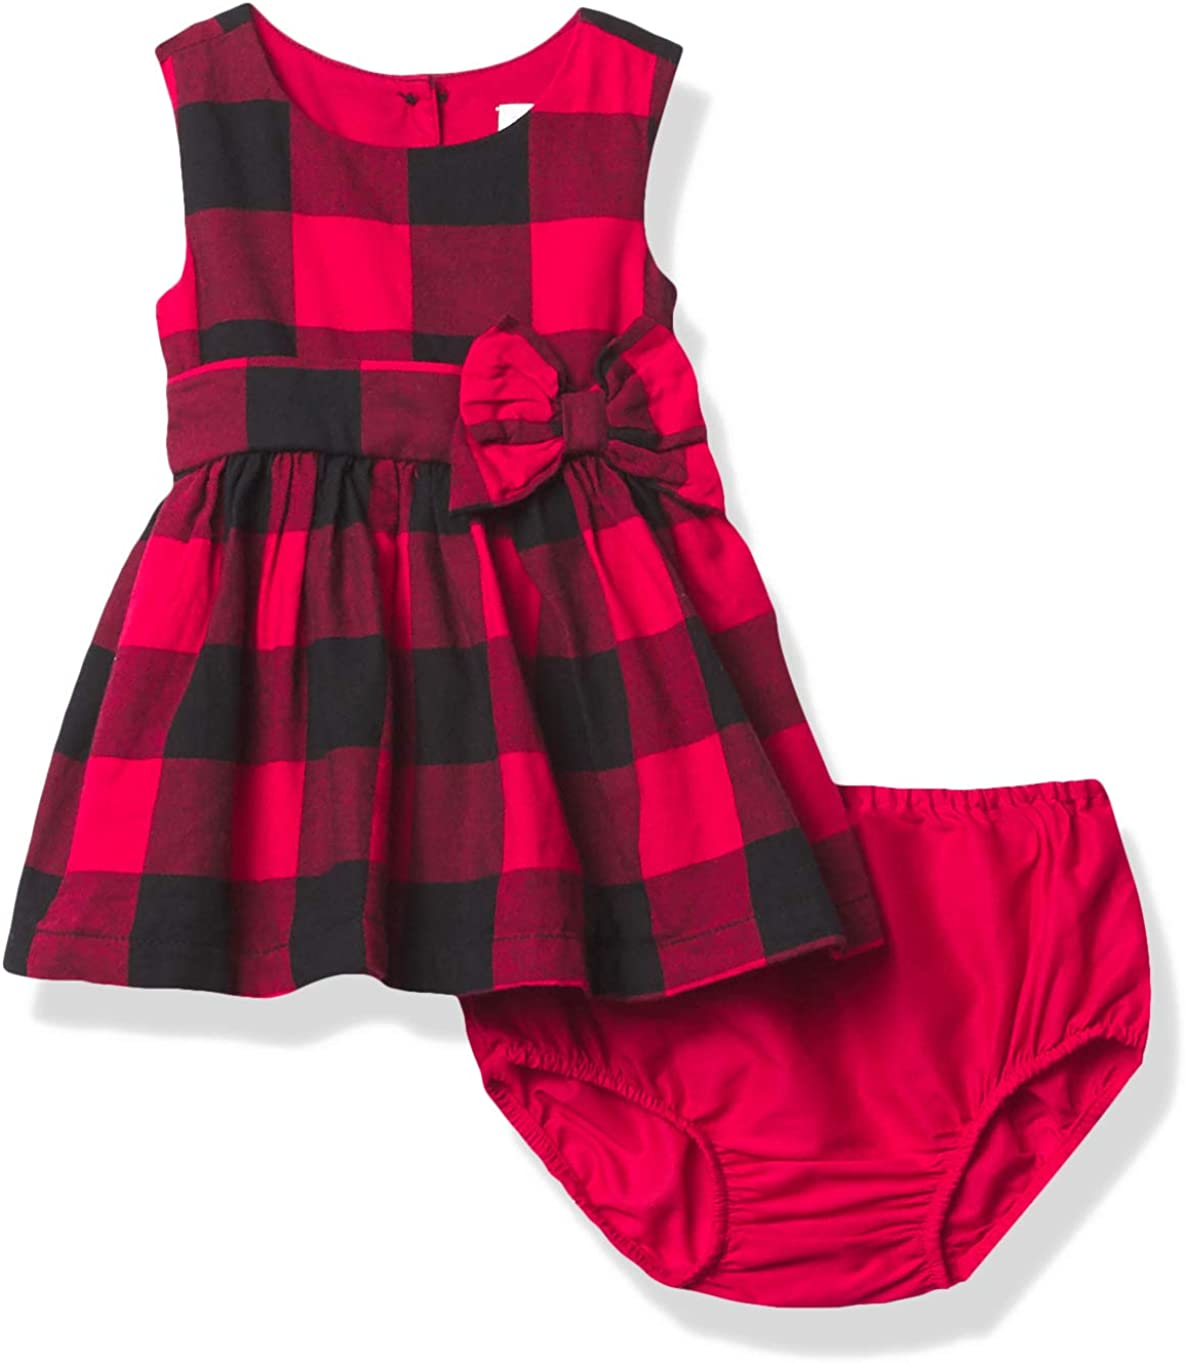 The Children's Place Baby Girls' Max 52% OFF Family Buffalo F Save money Plaid Matching